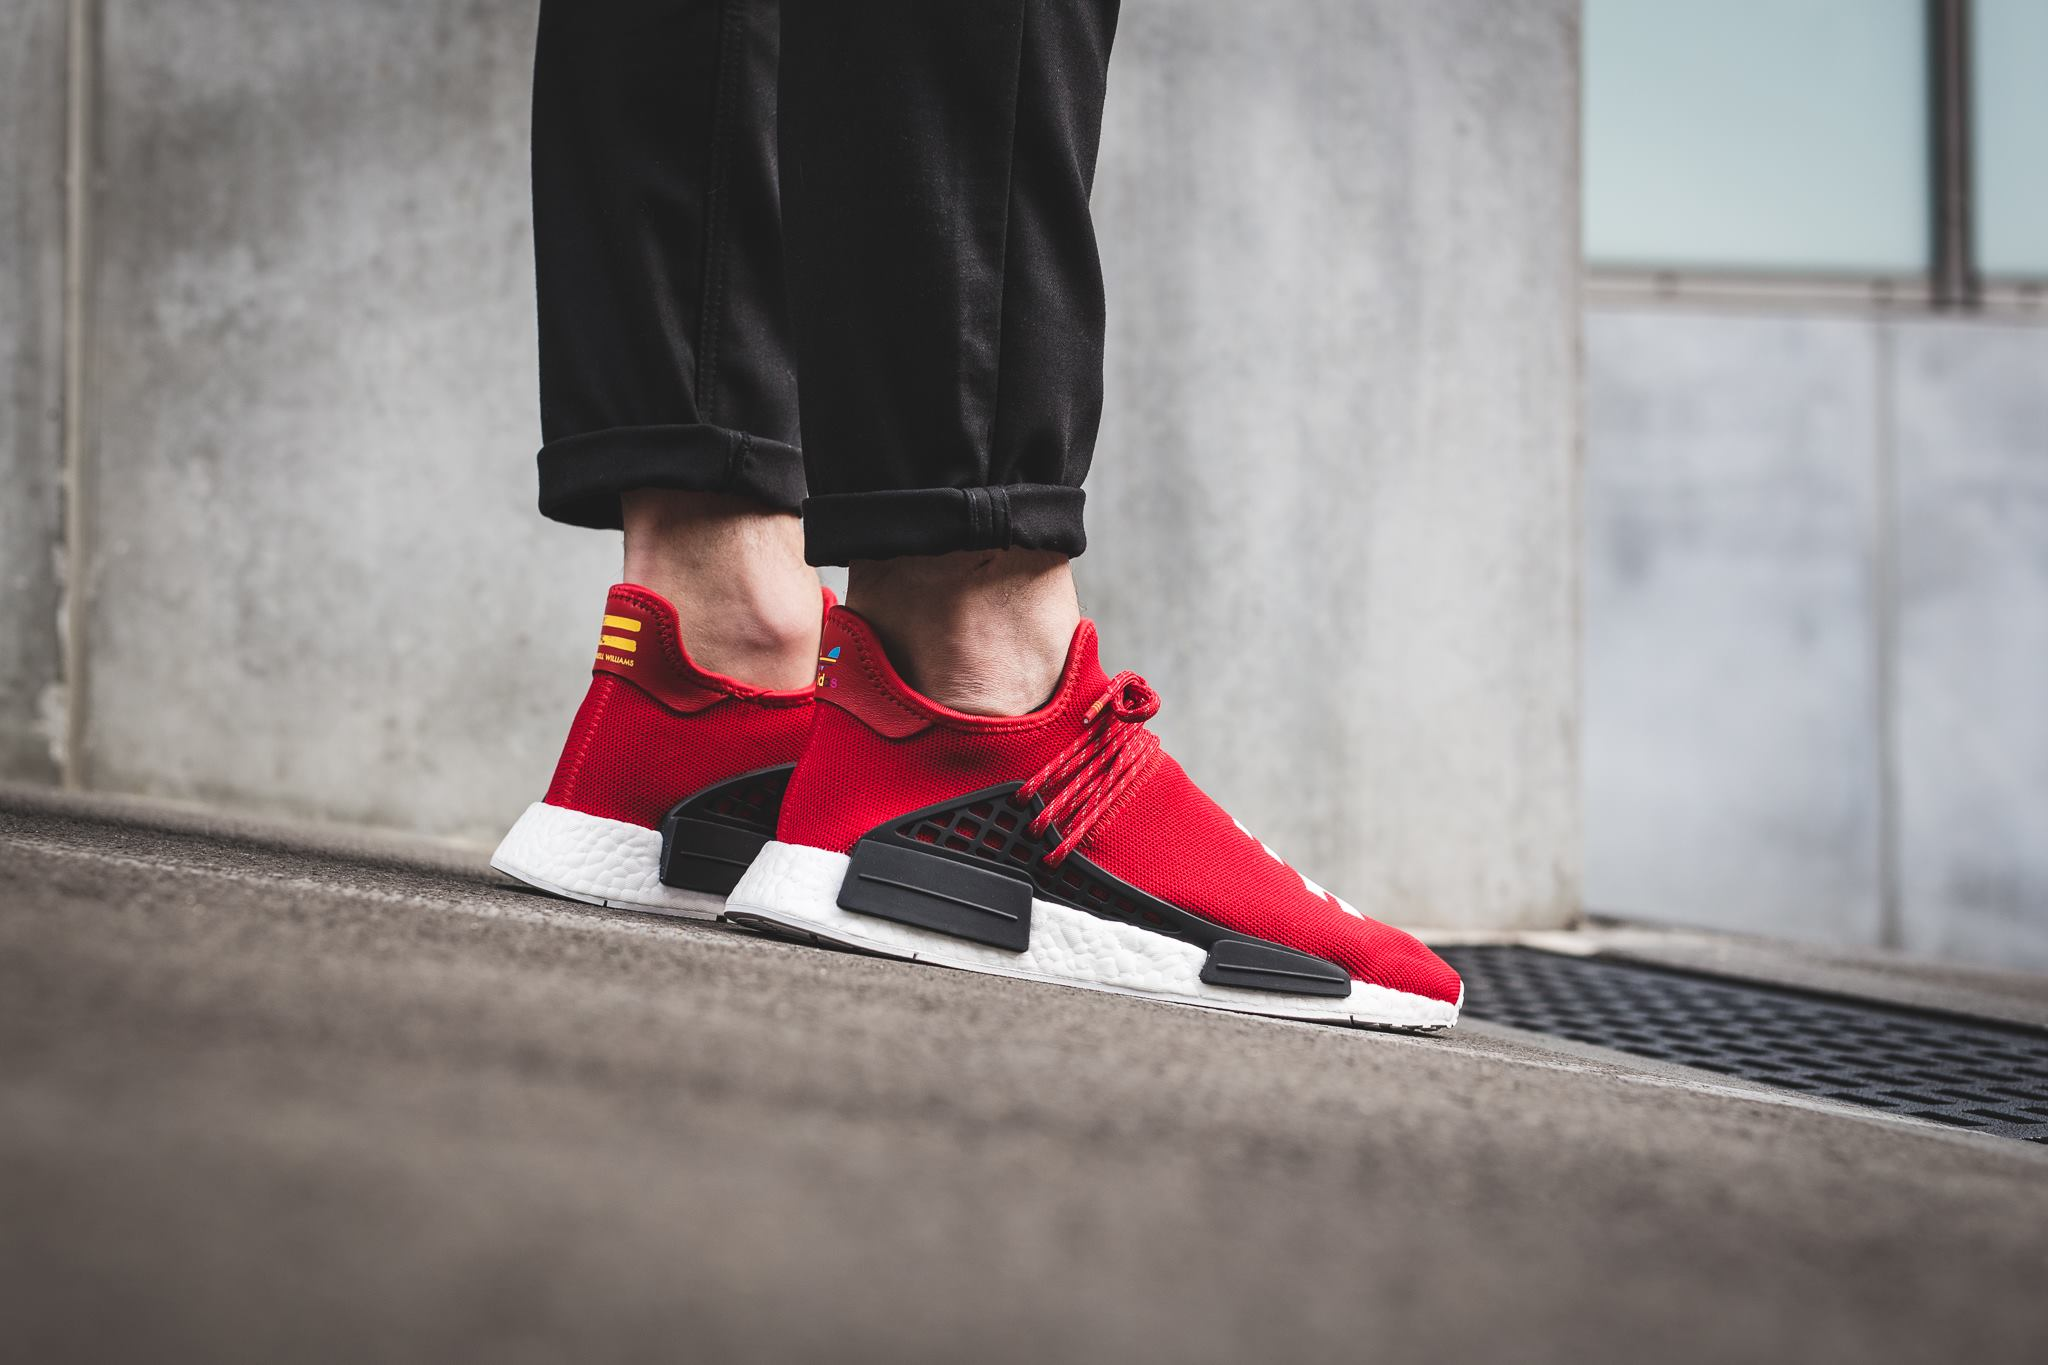 avis-basket-pw-x-adidas-originals-nmd-primeknit-hu-race-scarlet-red-rouge-2